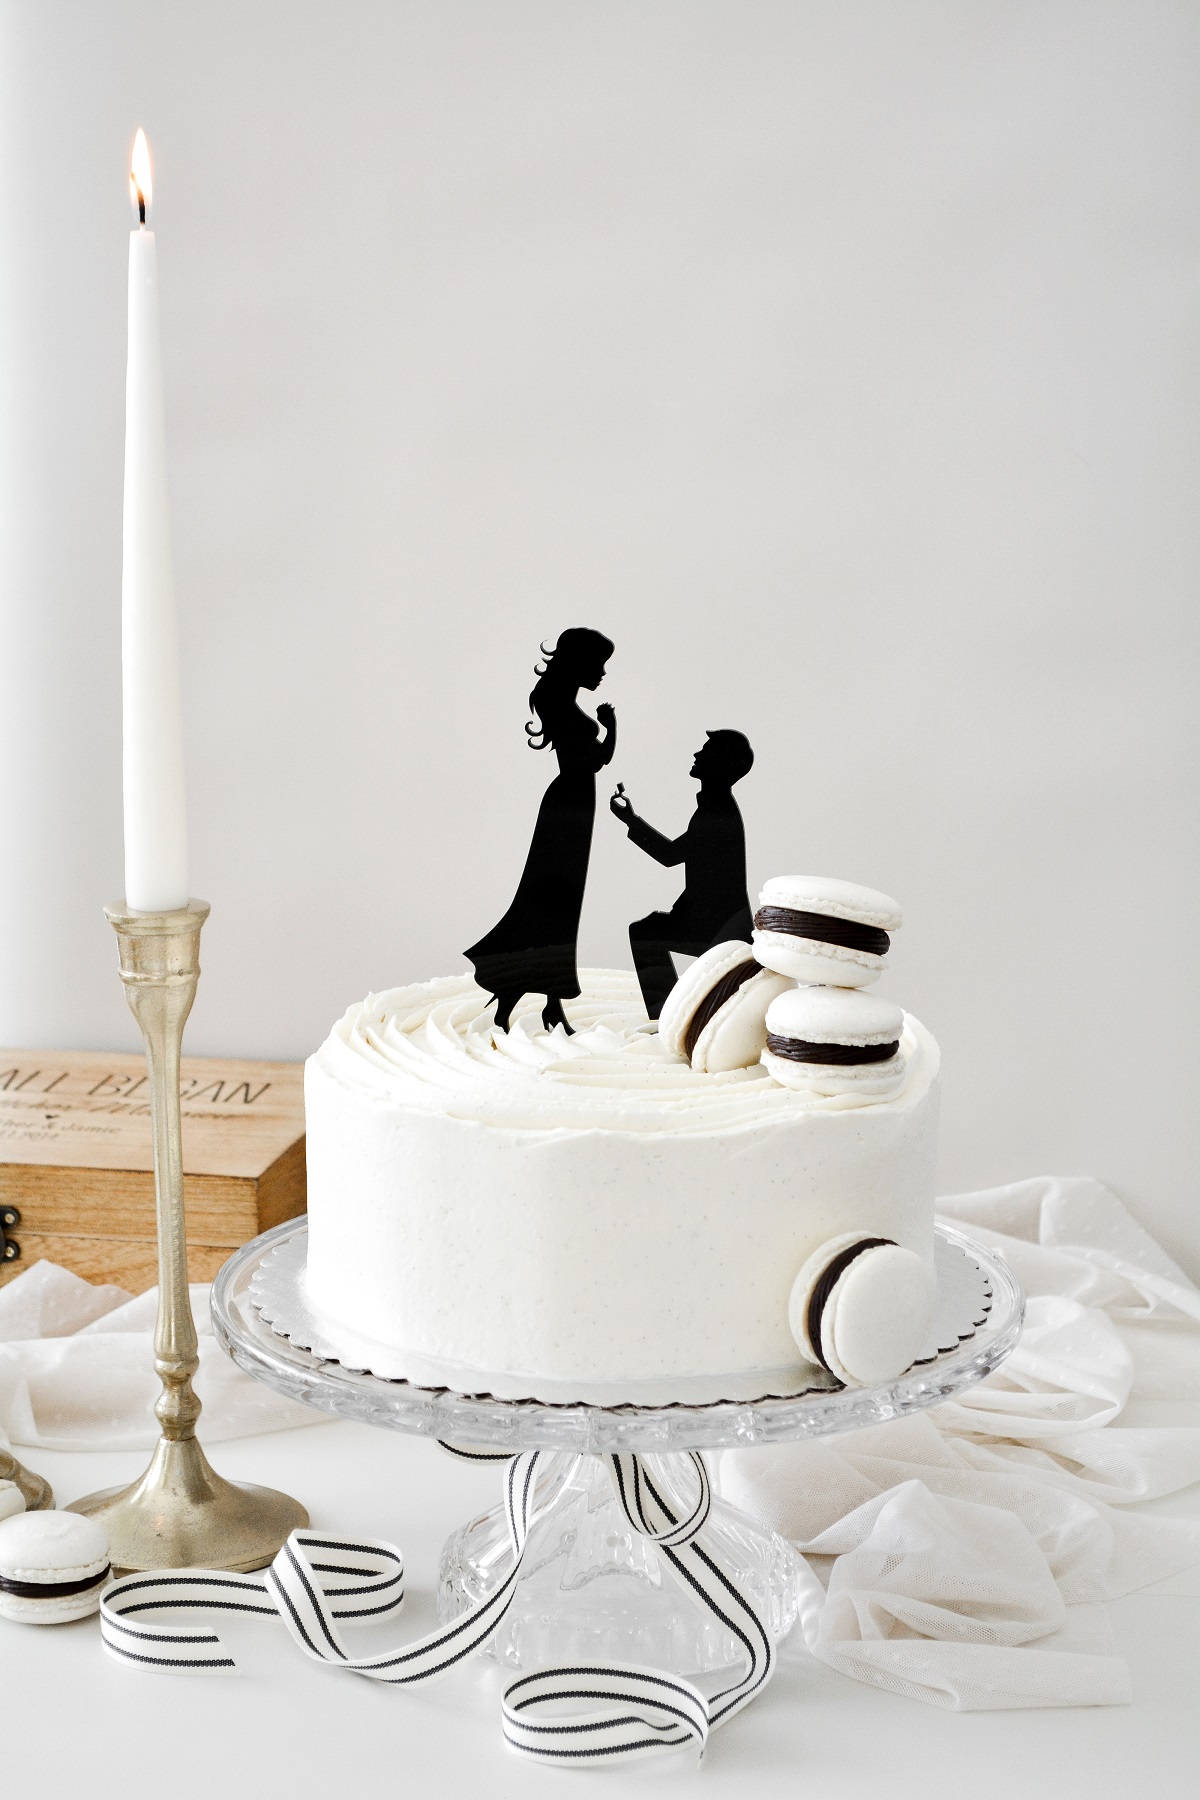 Cake on a crystal cake stand, with French macarons on top.